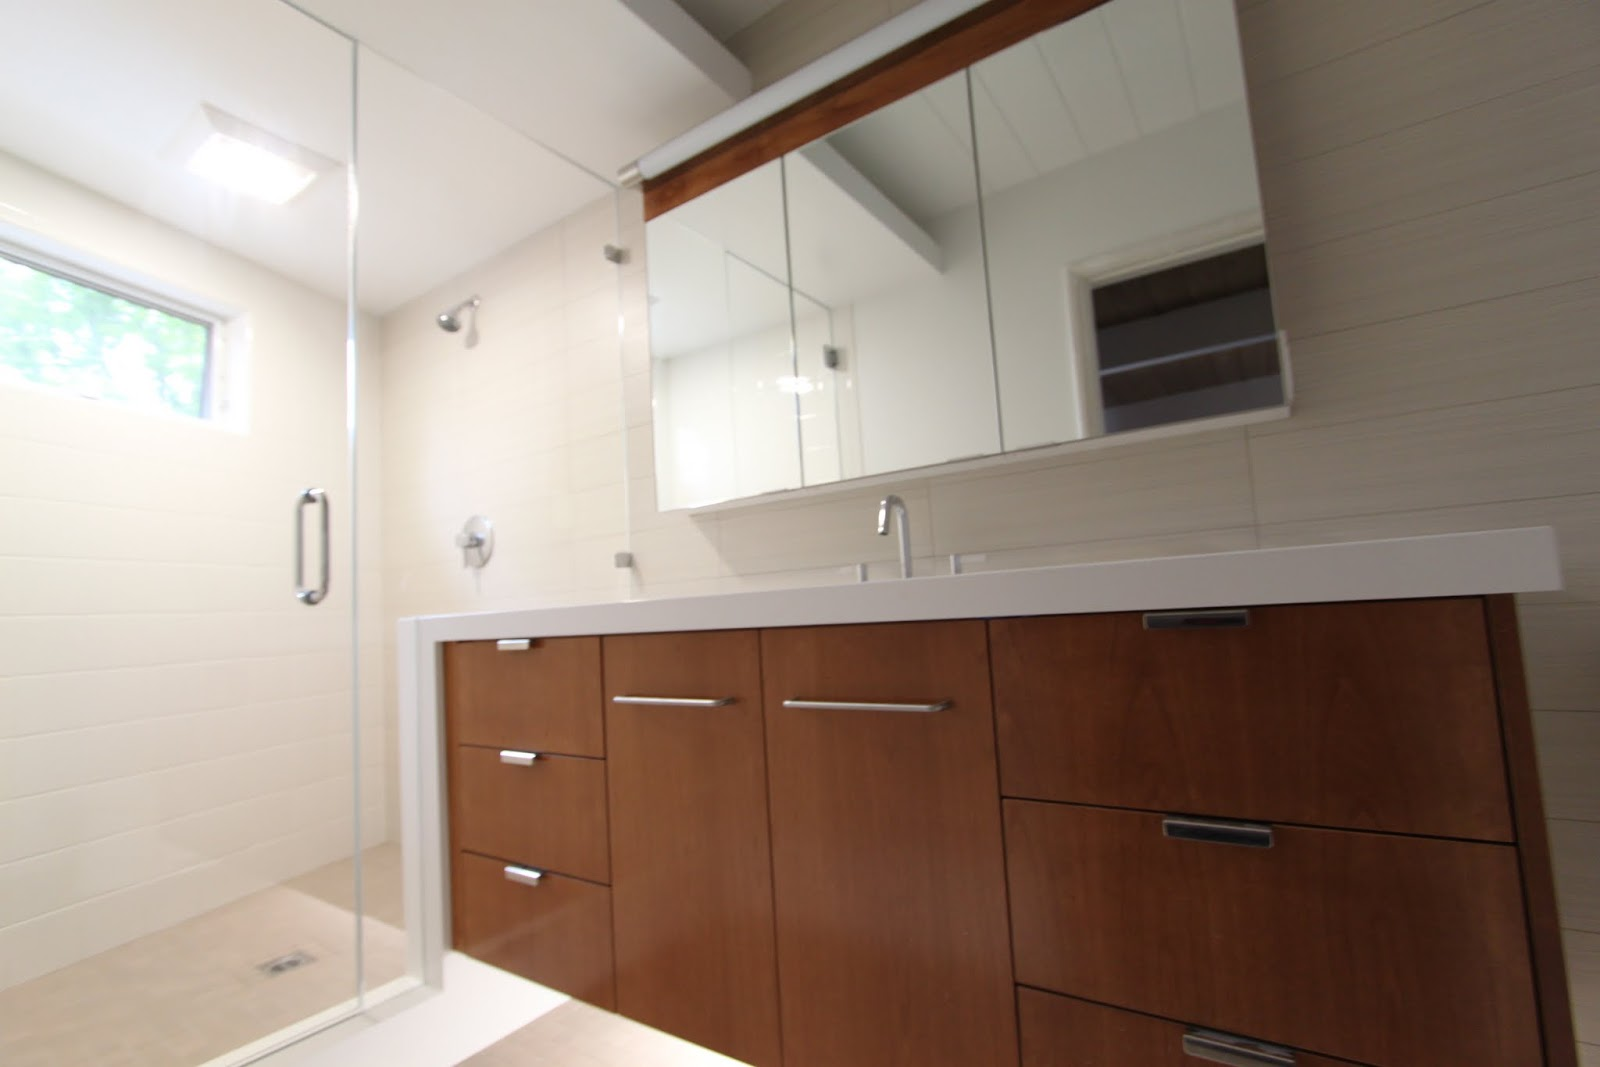 shower doors and paint in mid-century modern bathroom ...